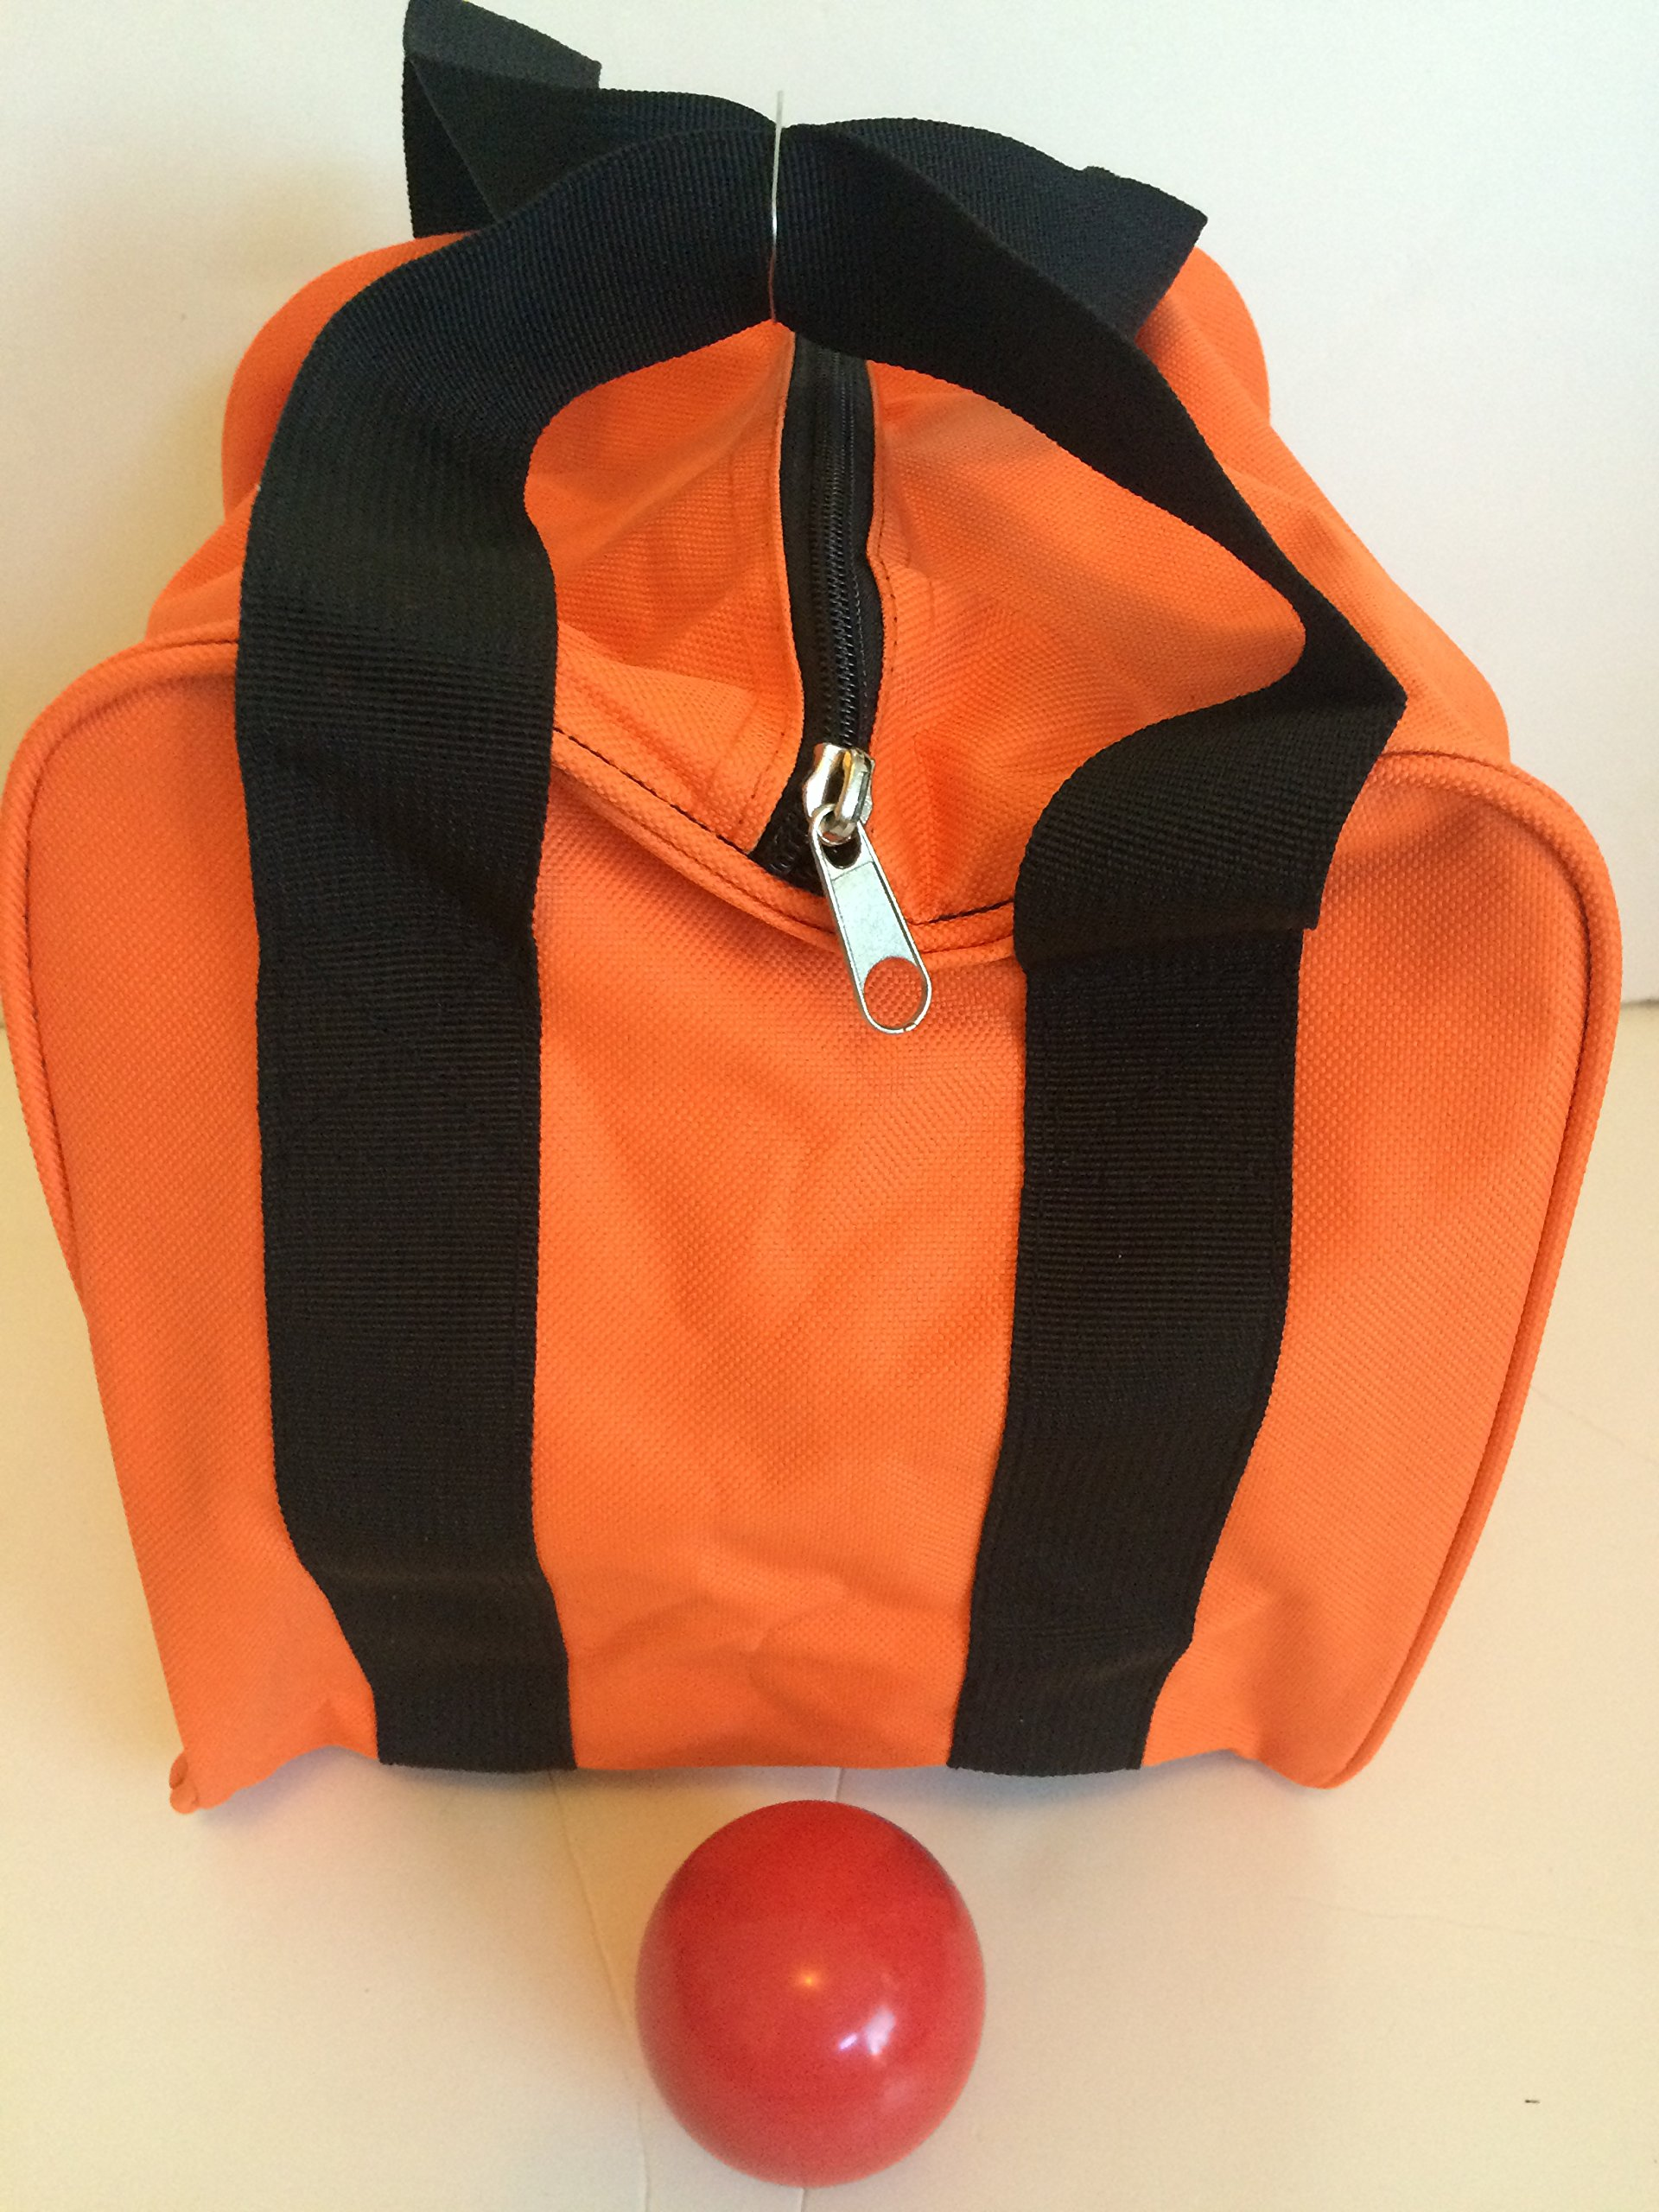 Unique Bocce Accessories Package - Extra Heavy Duty Nylon Bocce Bag (Orange with Black Handles) and Red pallina